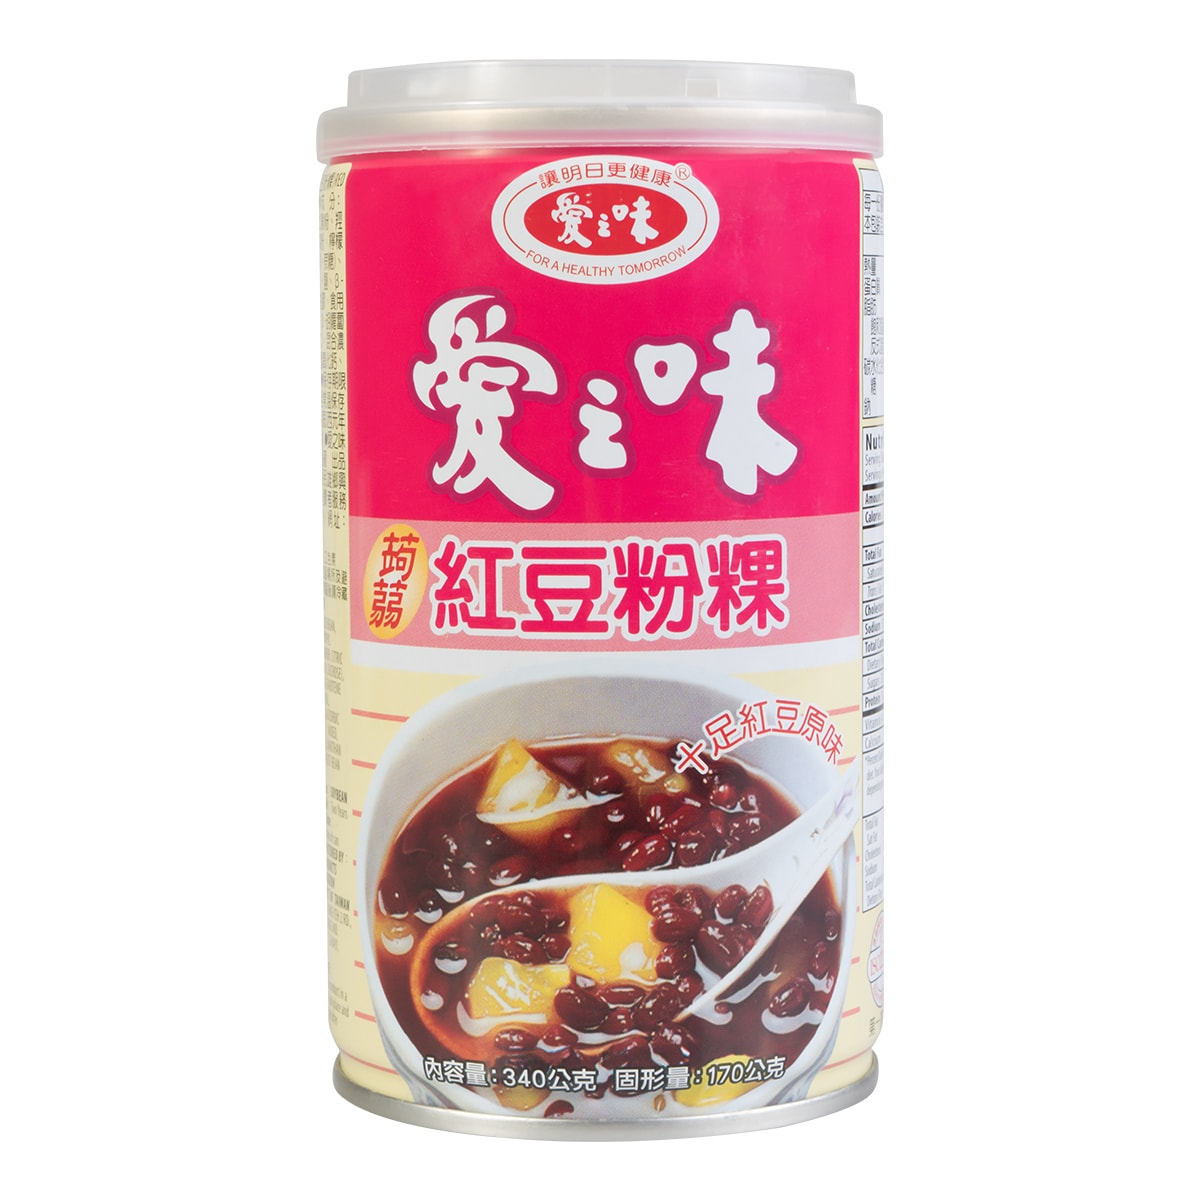 AGV Red Bean with Jelly in Syrup 340g